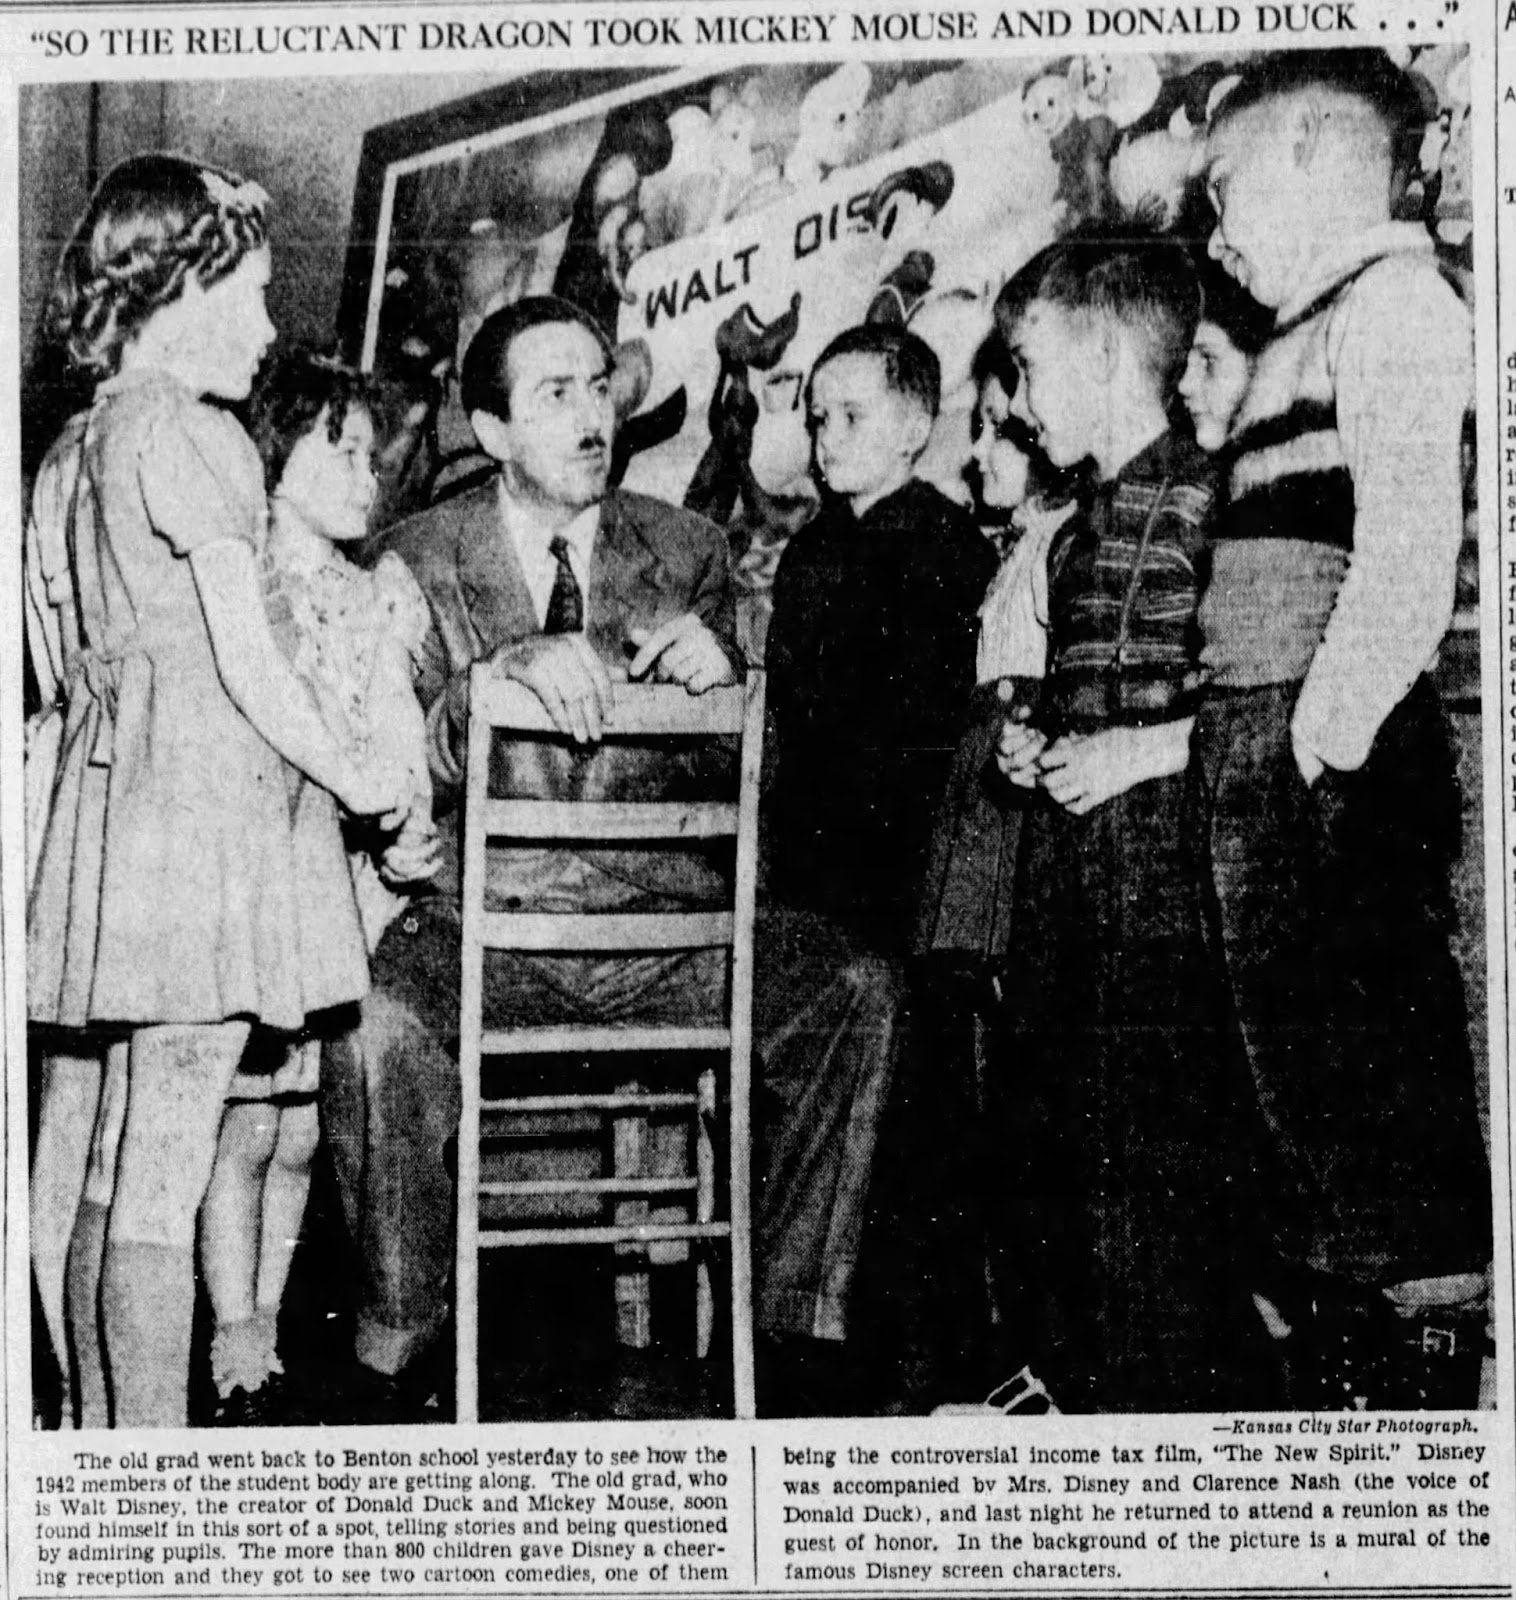 In one of the only known photographs of the murals, Disney can be seen in front of the gifted artwork visiting with school children.